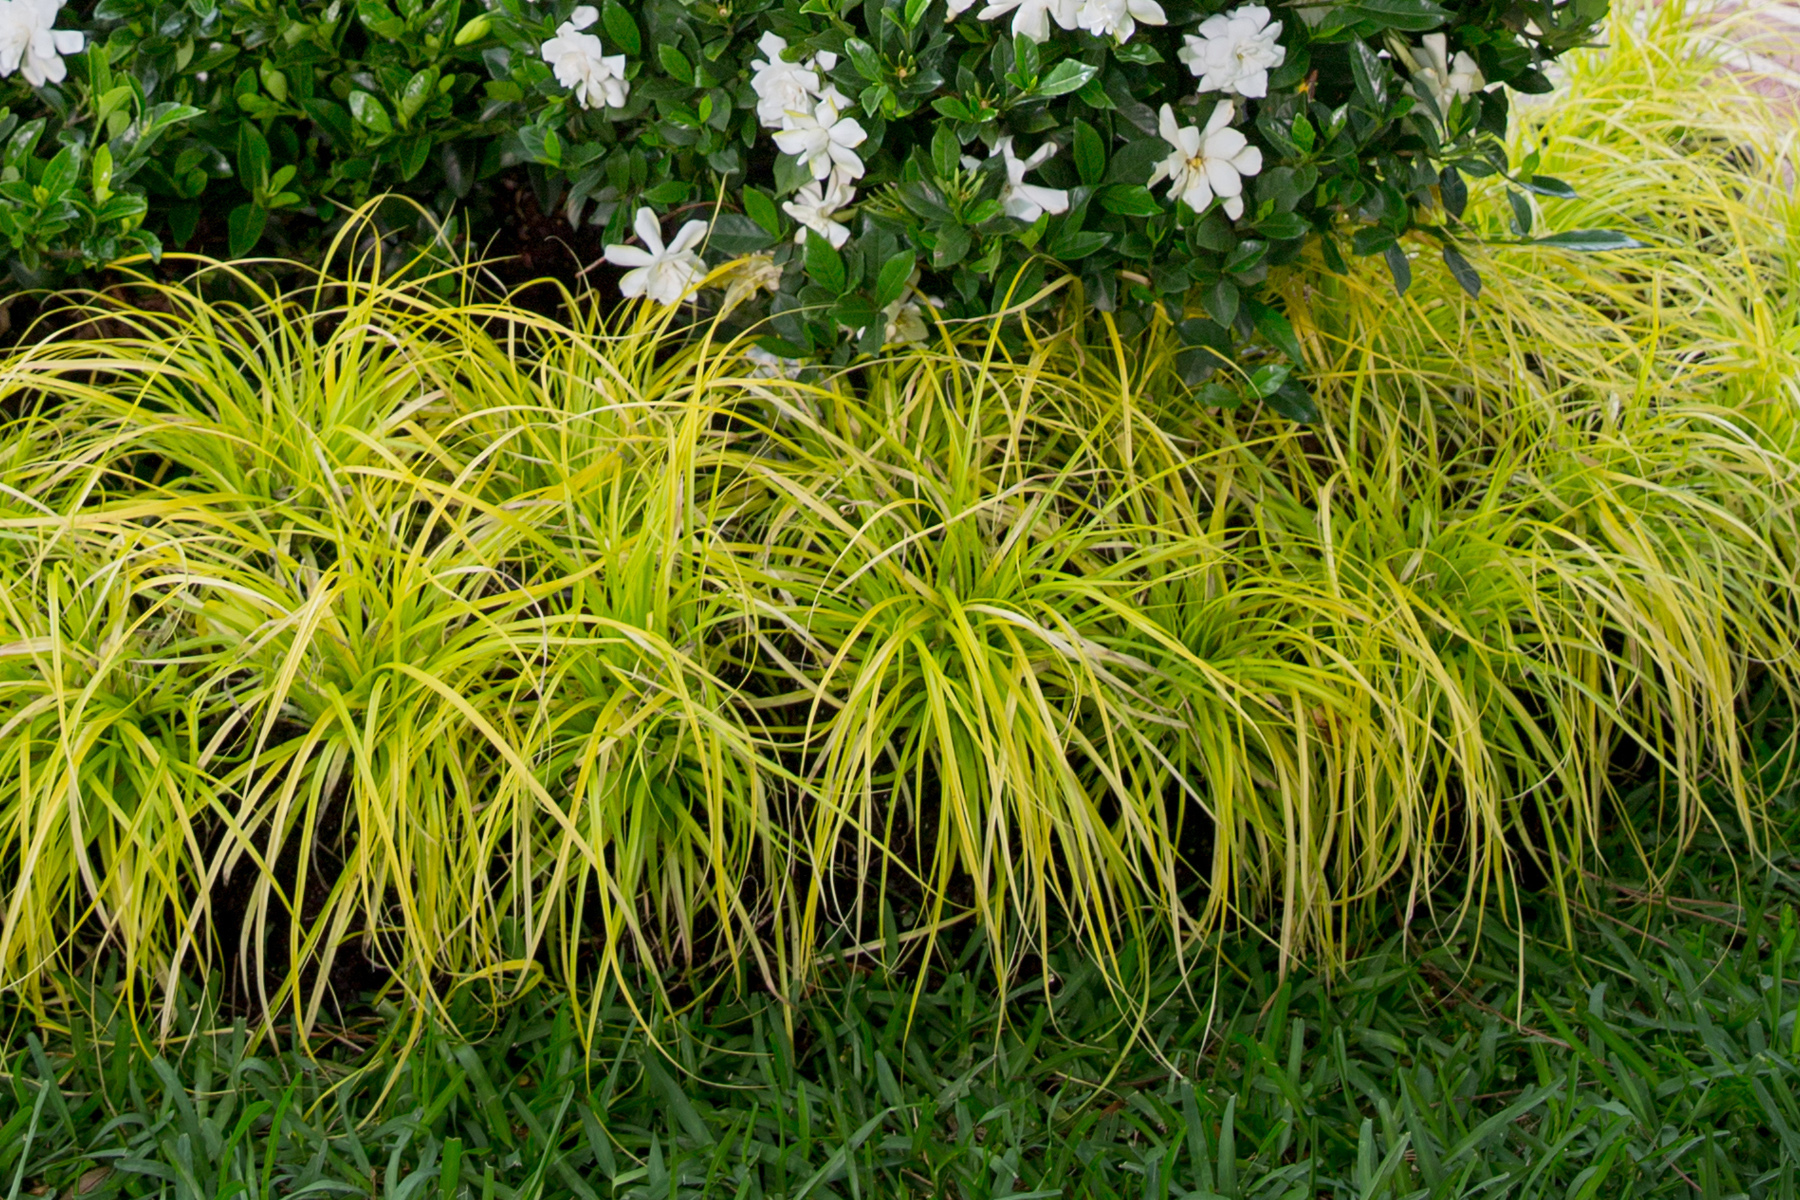 carex_everillo_1800x1200px.jpg